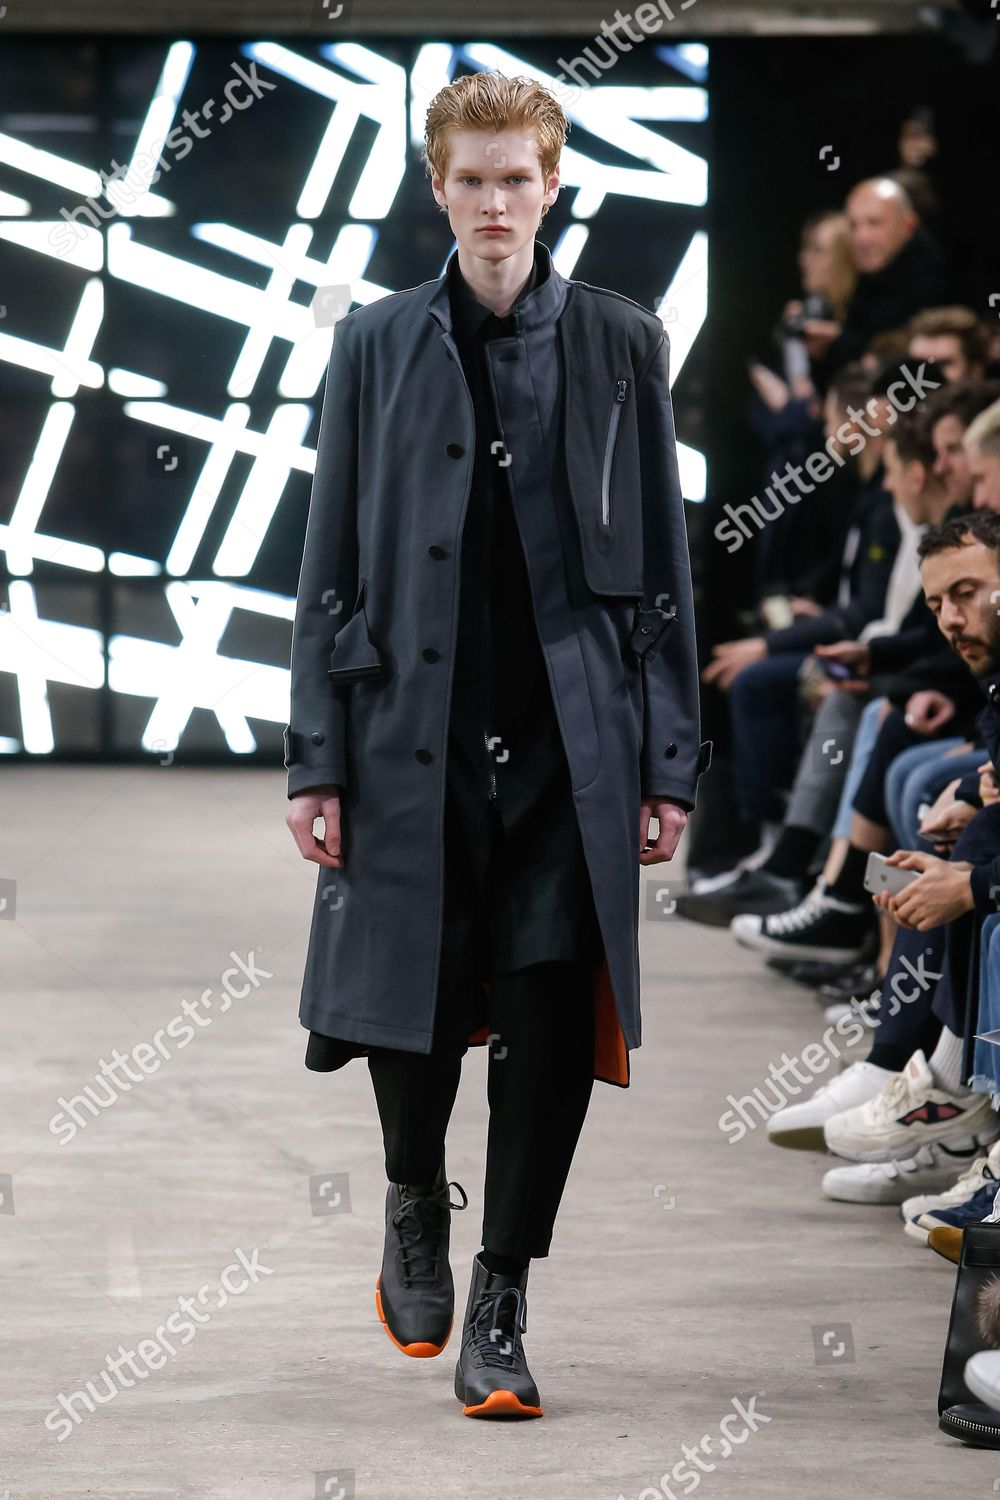 8bf8f1303ff69 Model on catwalk Editorial Stock Photo - Stock Image